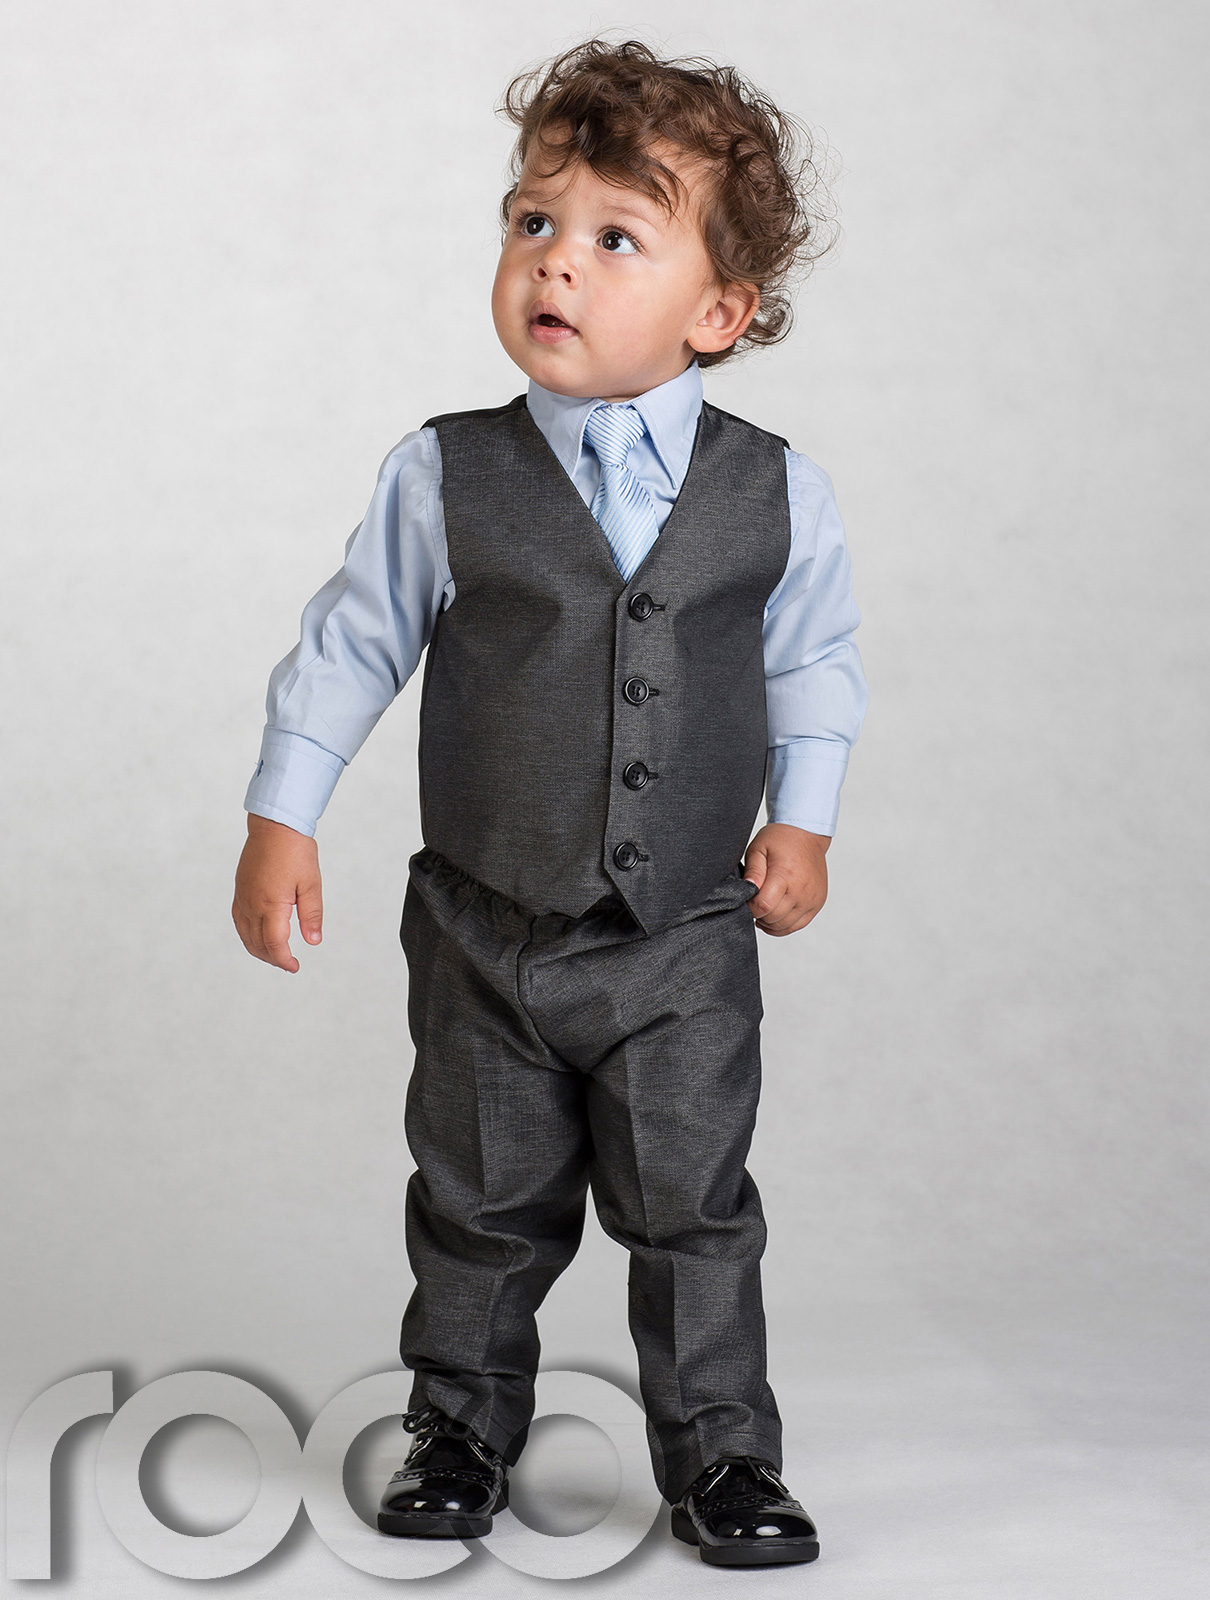 AFT Kids Light Grey Slim Fit Suit by AFT. Sold by rusticzcountrysstylexhomedecor.tk $ Black n Bianco Boys' Signature Slim Suit in Light Gray Complete Set. Sold by House Bianco. $ $ - $ Black N Bianco Boys Light Gray Suit Five Piece Set Complete Outfit (5) Sold by House Bianco.